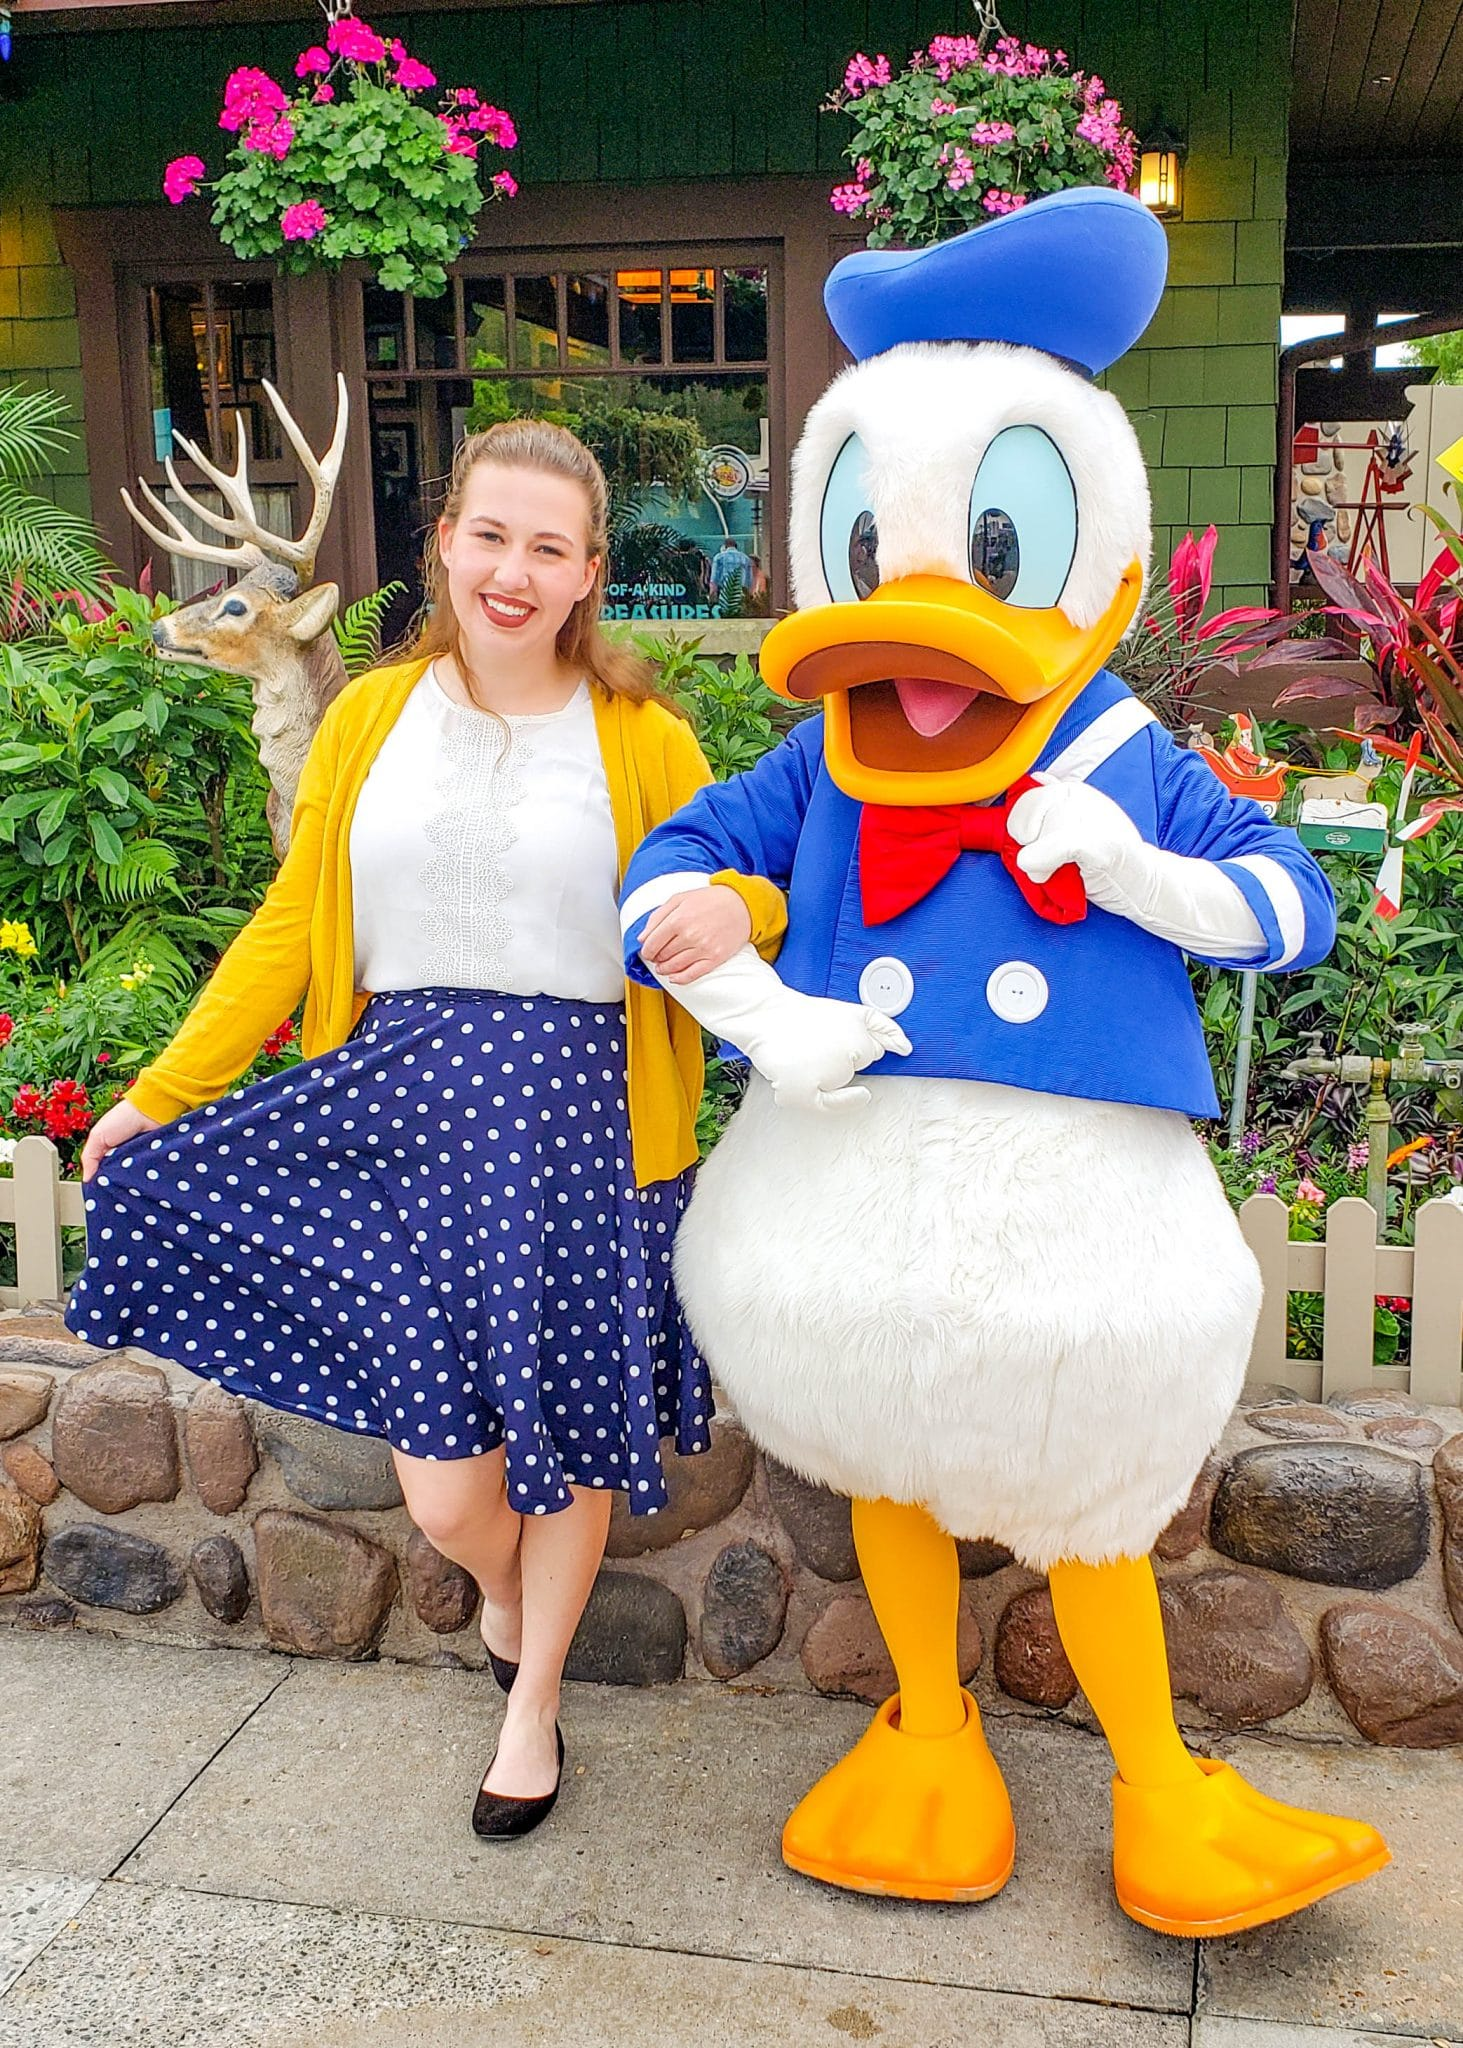 8 Tips for Great Disney Character Interactions | Heading on a Disney vacation soon? Before you go, read this post to learn the best tips for your Disney character interactions to make the most of the moment when in the parks! | #DisneyCharacter #DisneyCharacter #DisneyPark #DisneyParks #DisneyTips